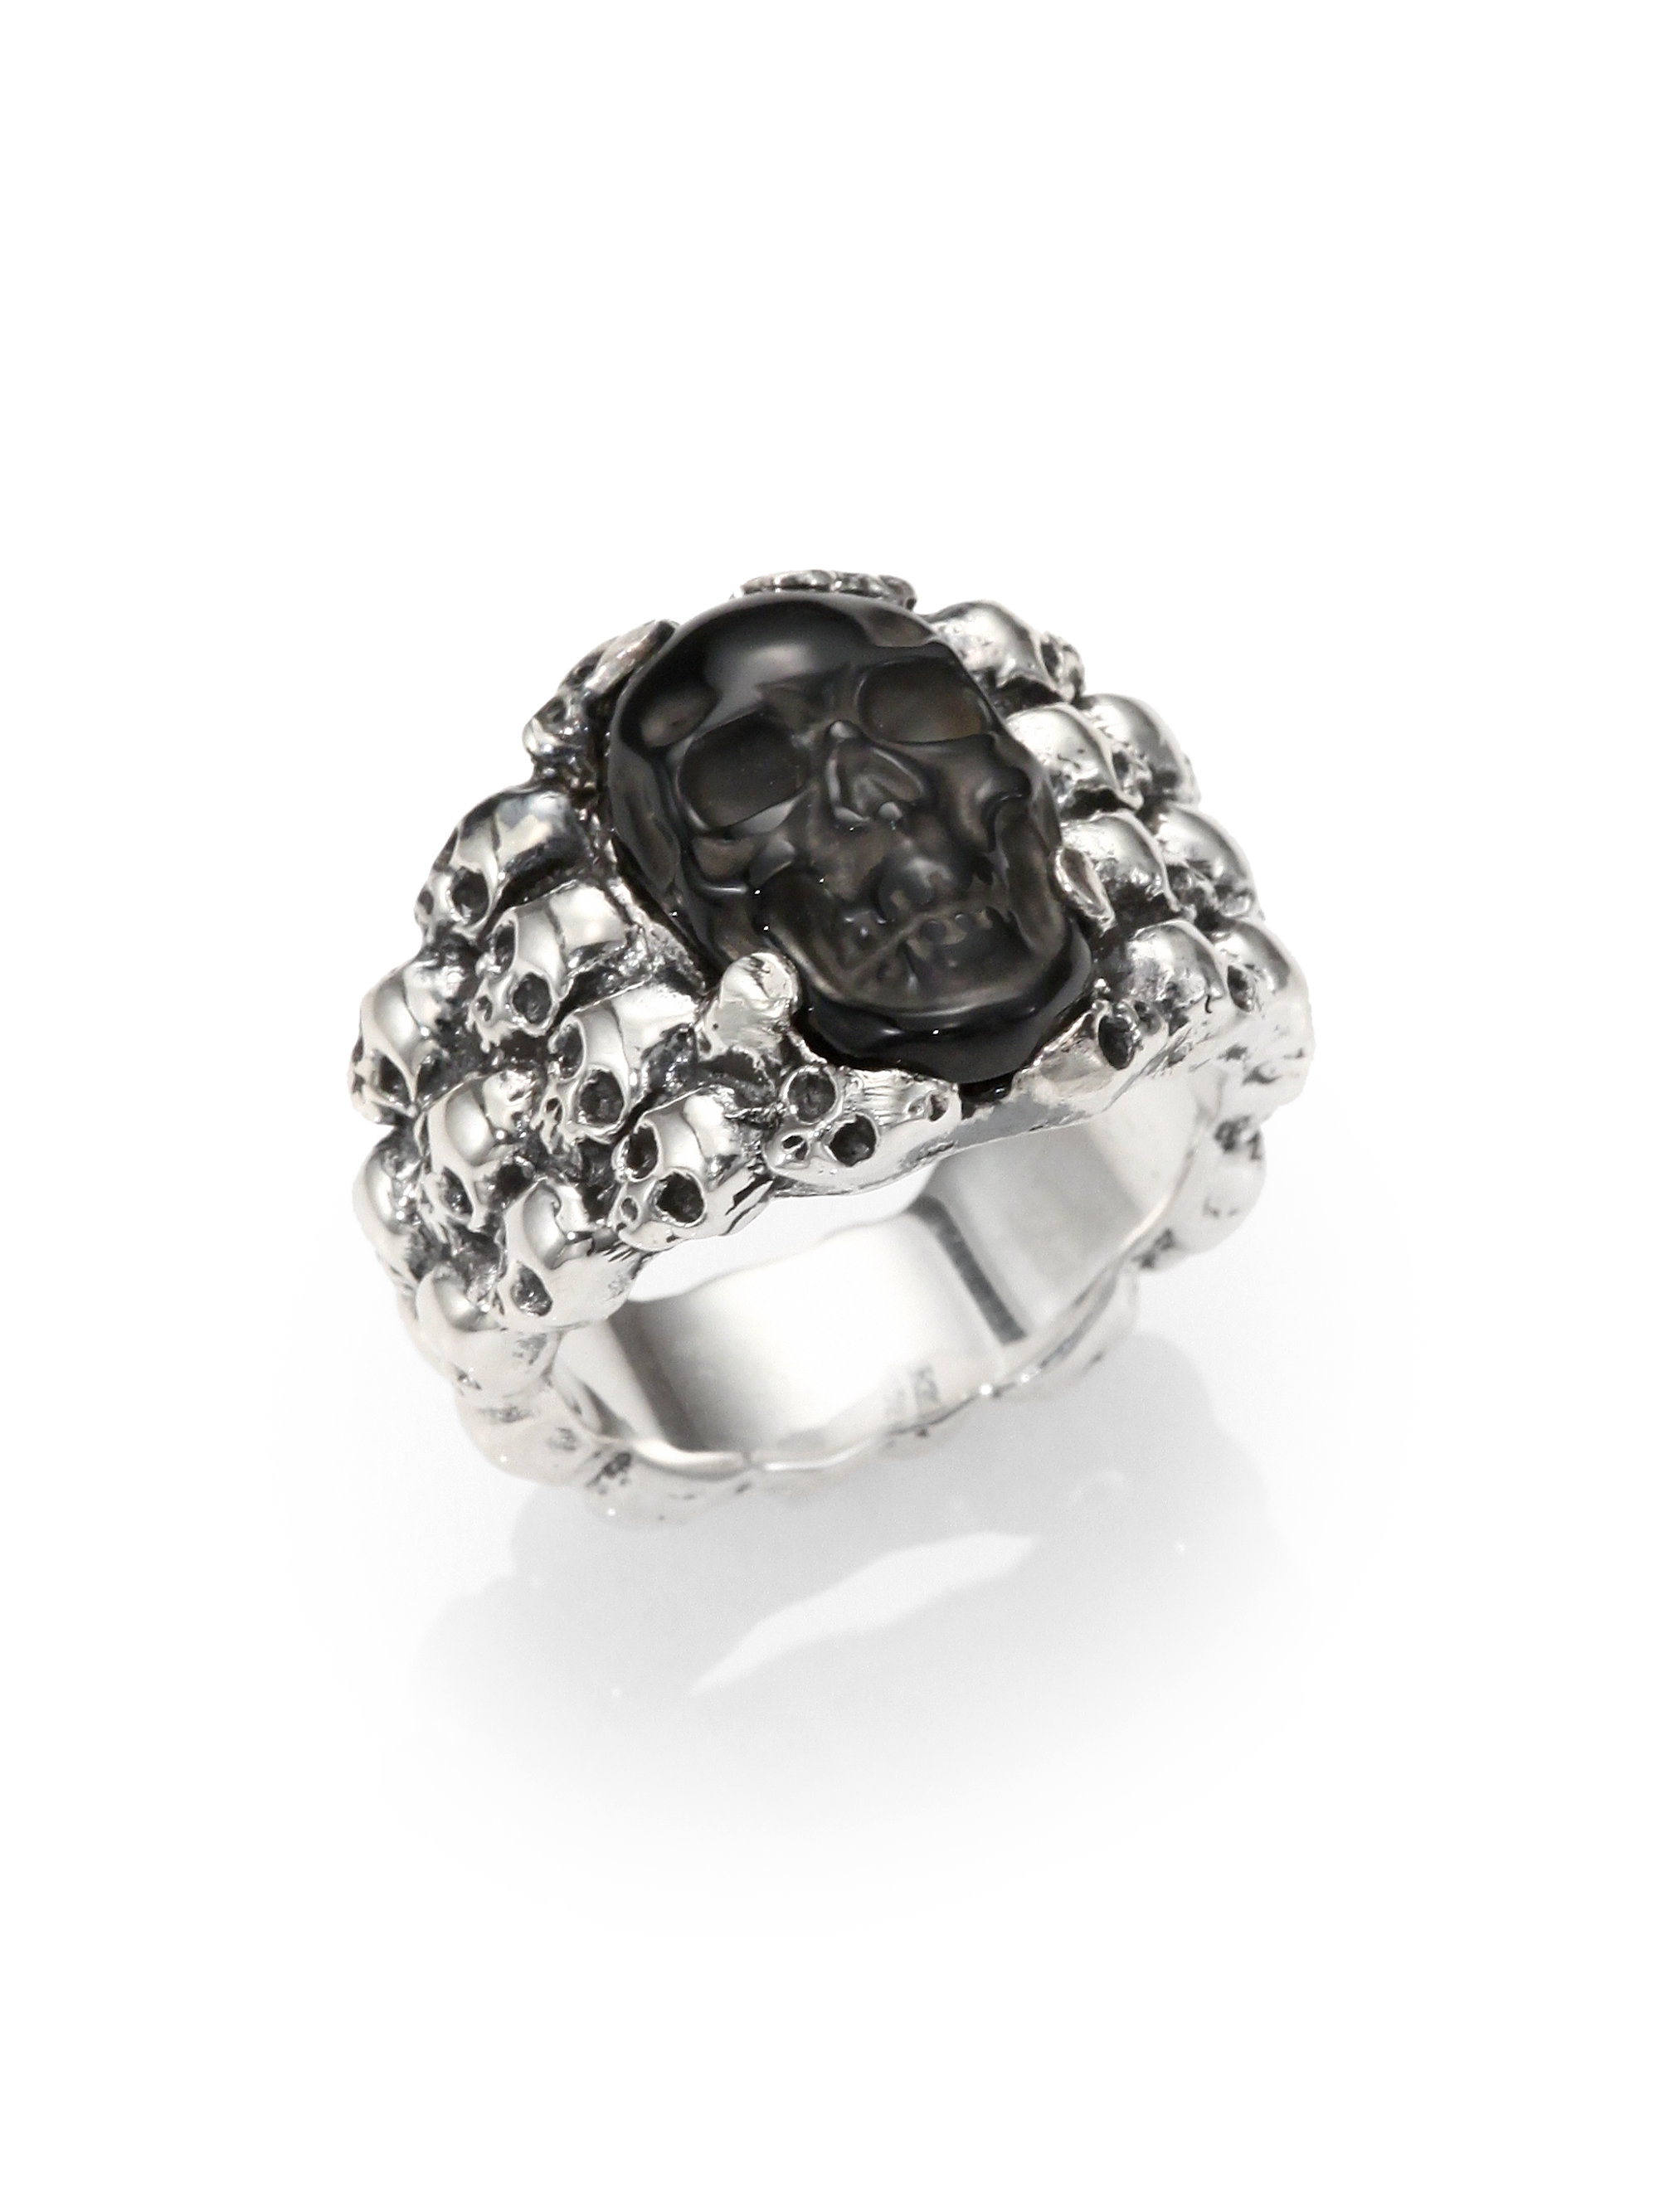 rings for silver gallery classic skull normal product studio metallic baby in men jewelry ring king lyst